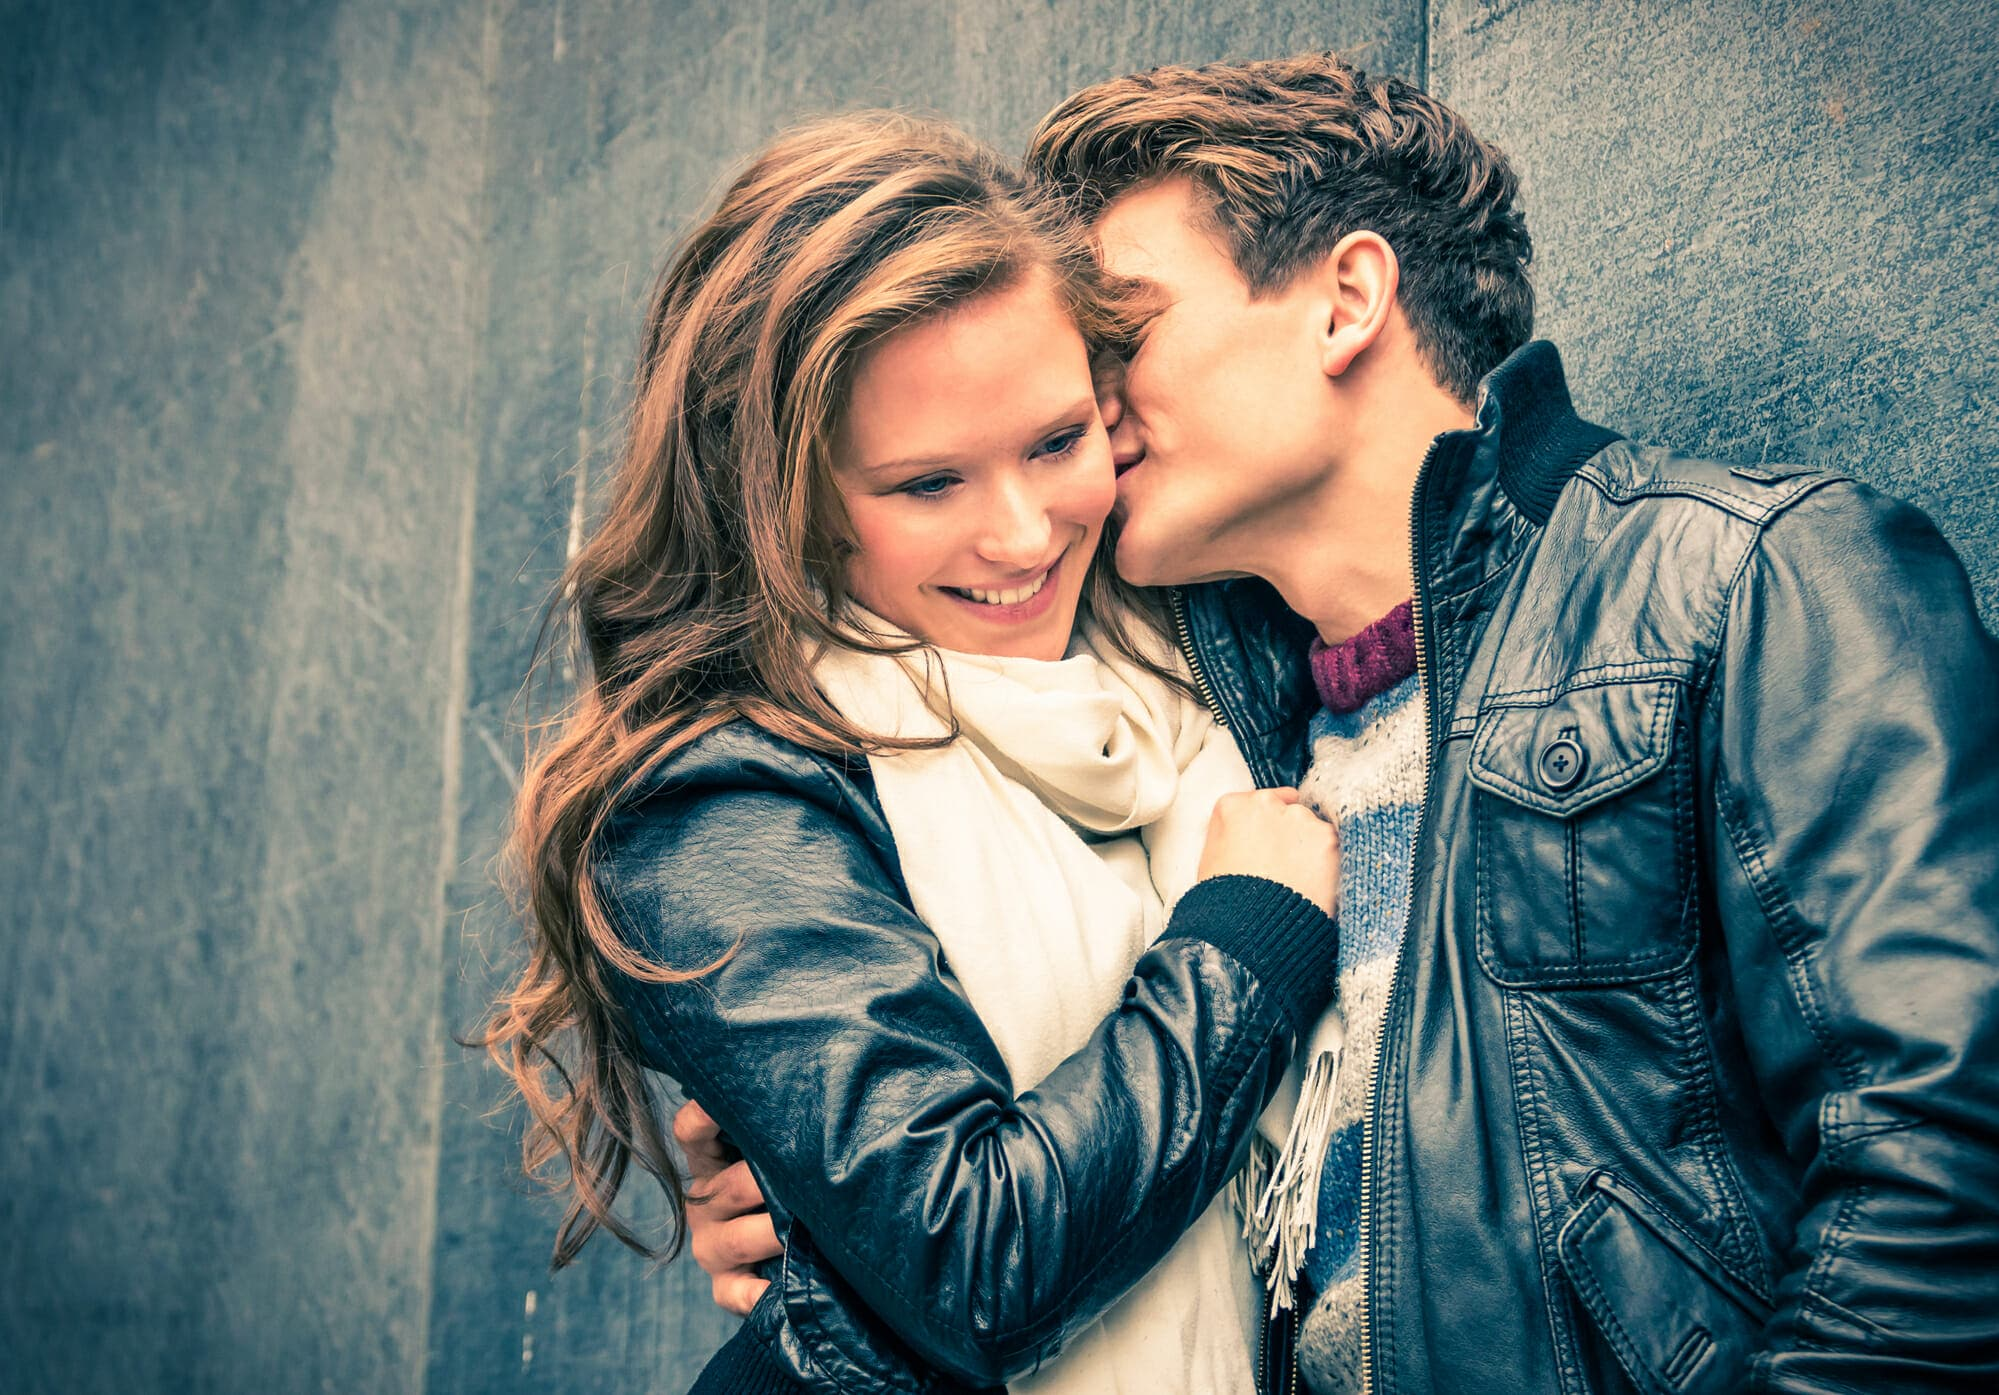 How to Tell If a Guy Likes You - Signs She is Into You